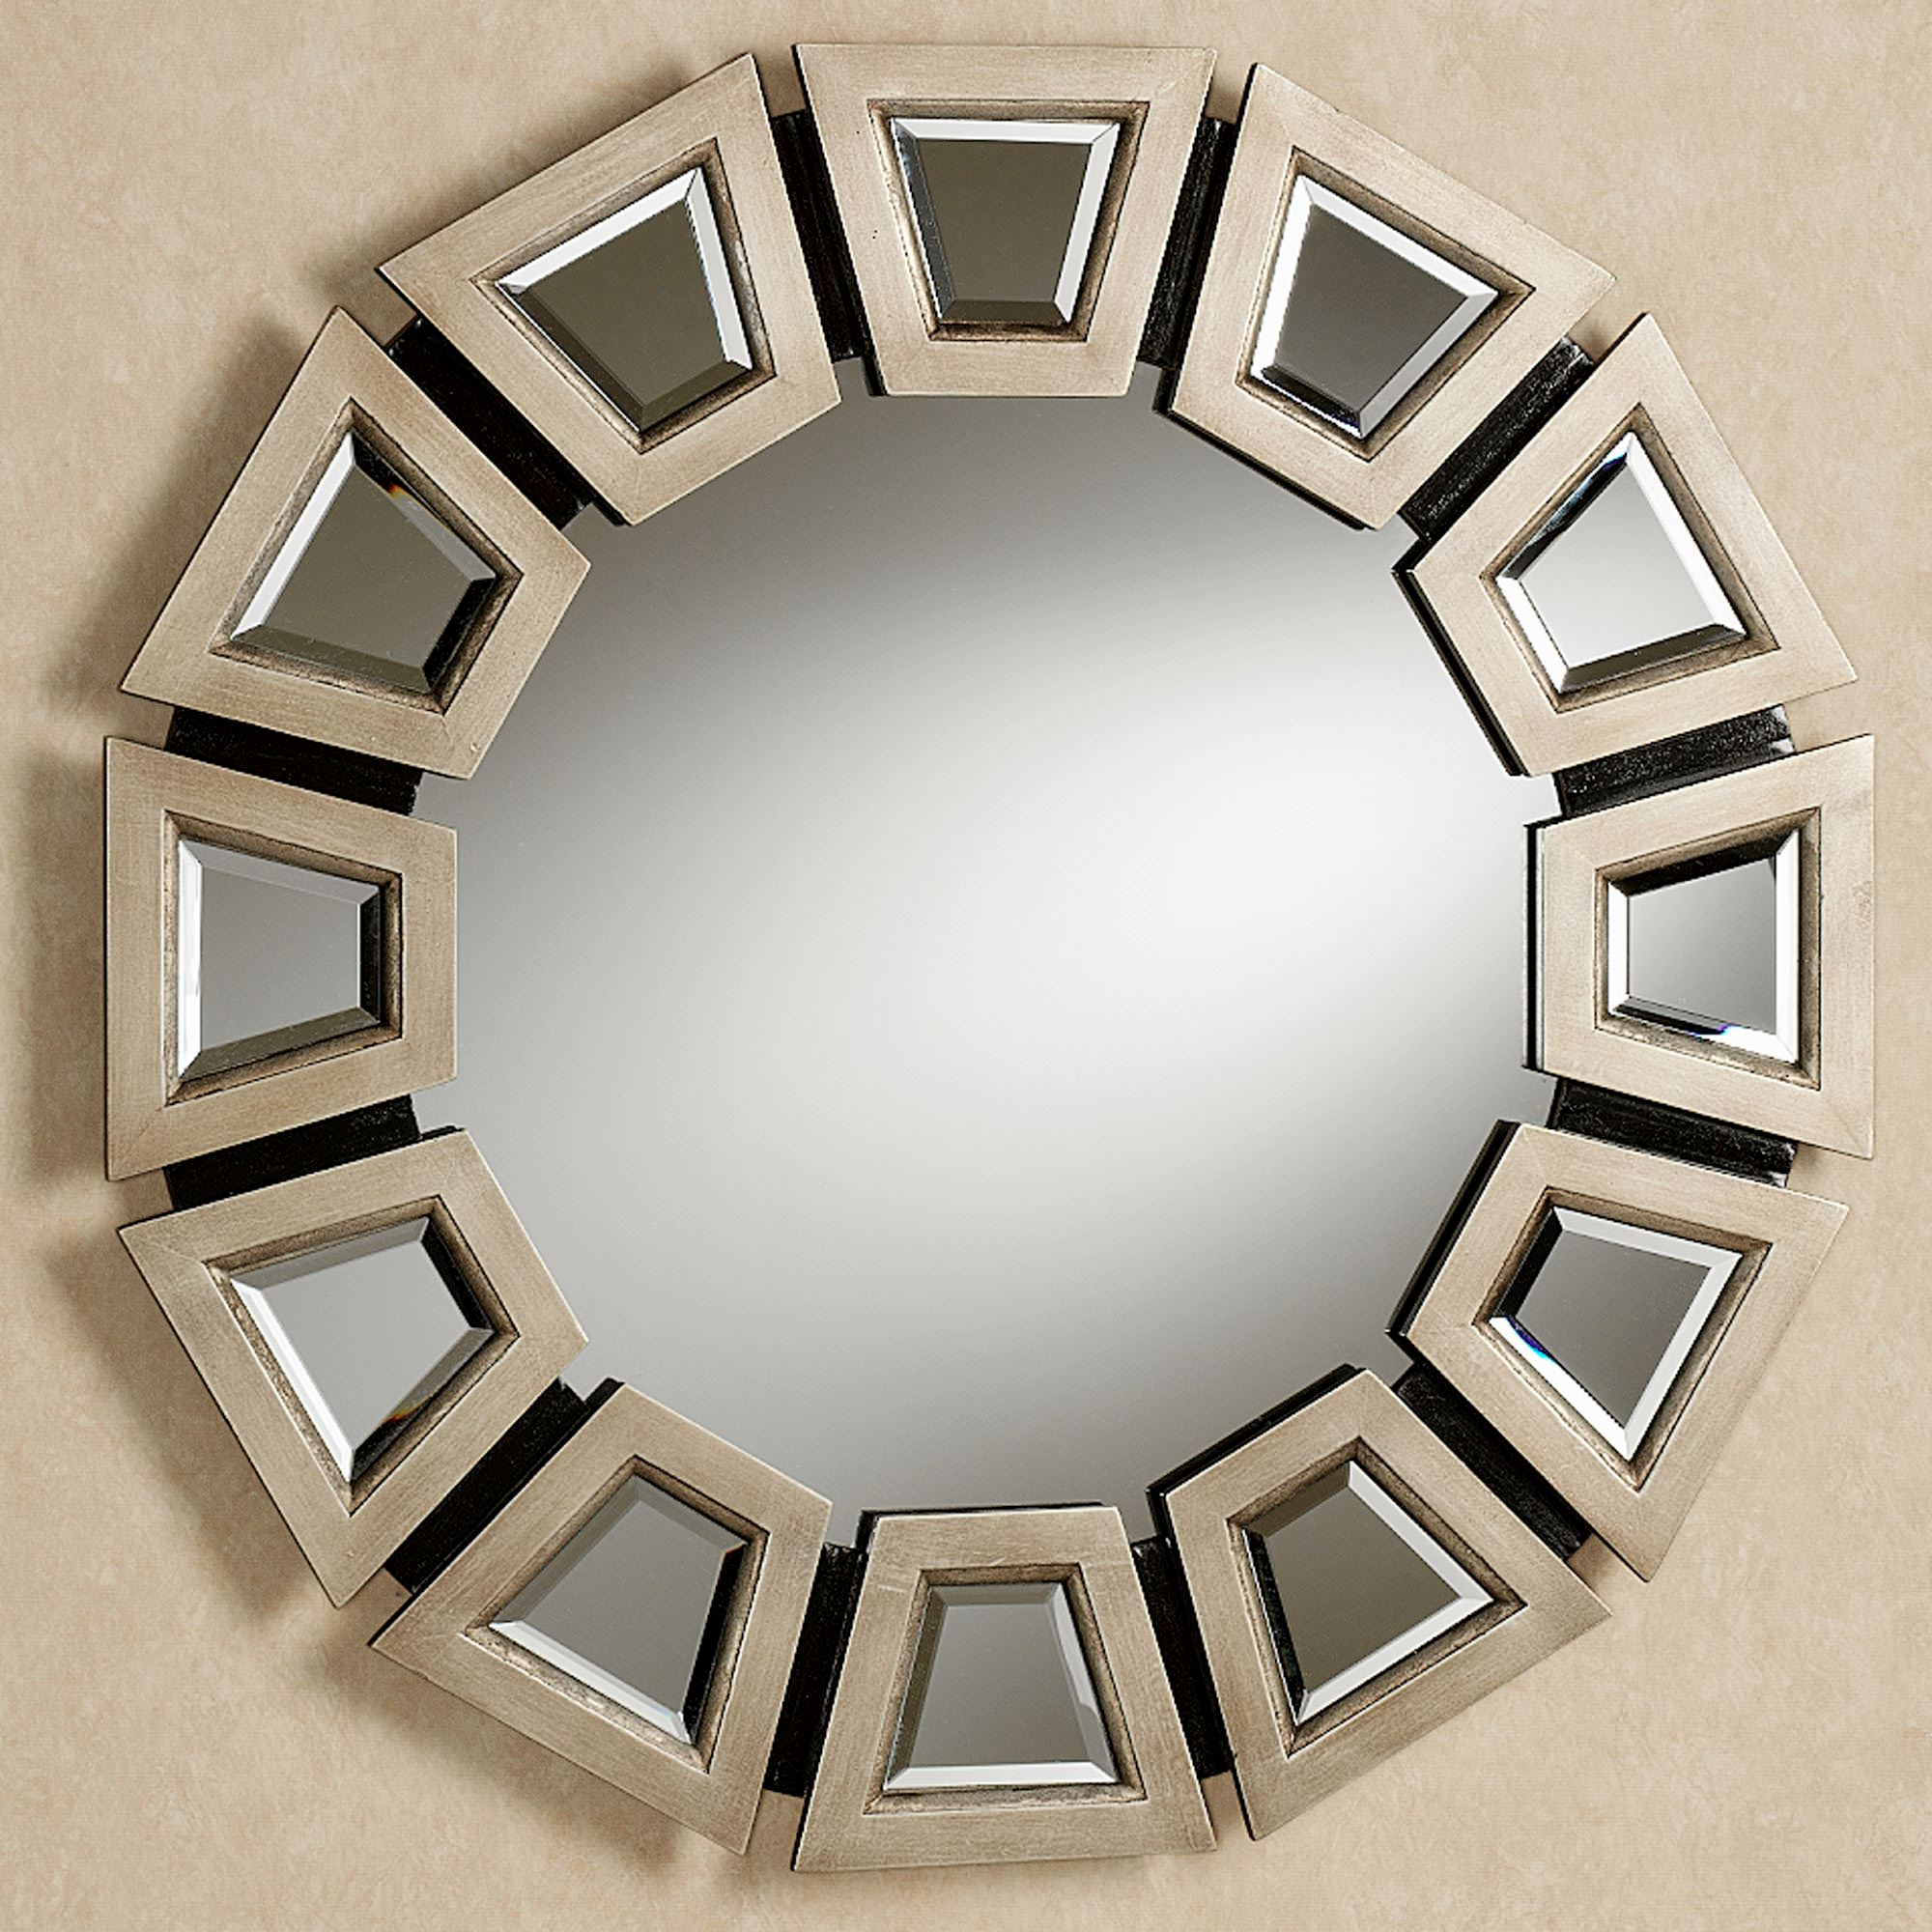 Most Recent Circular Wall Mirrors With Regard To Abstract Twilight Round Wall Mirror (View 19 of 20)